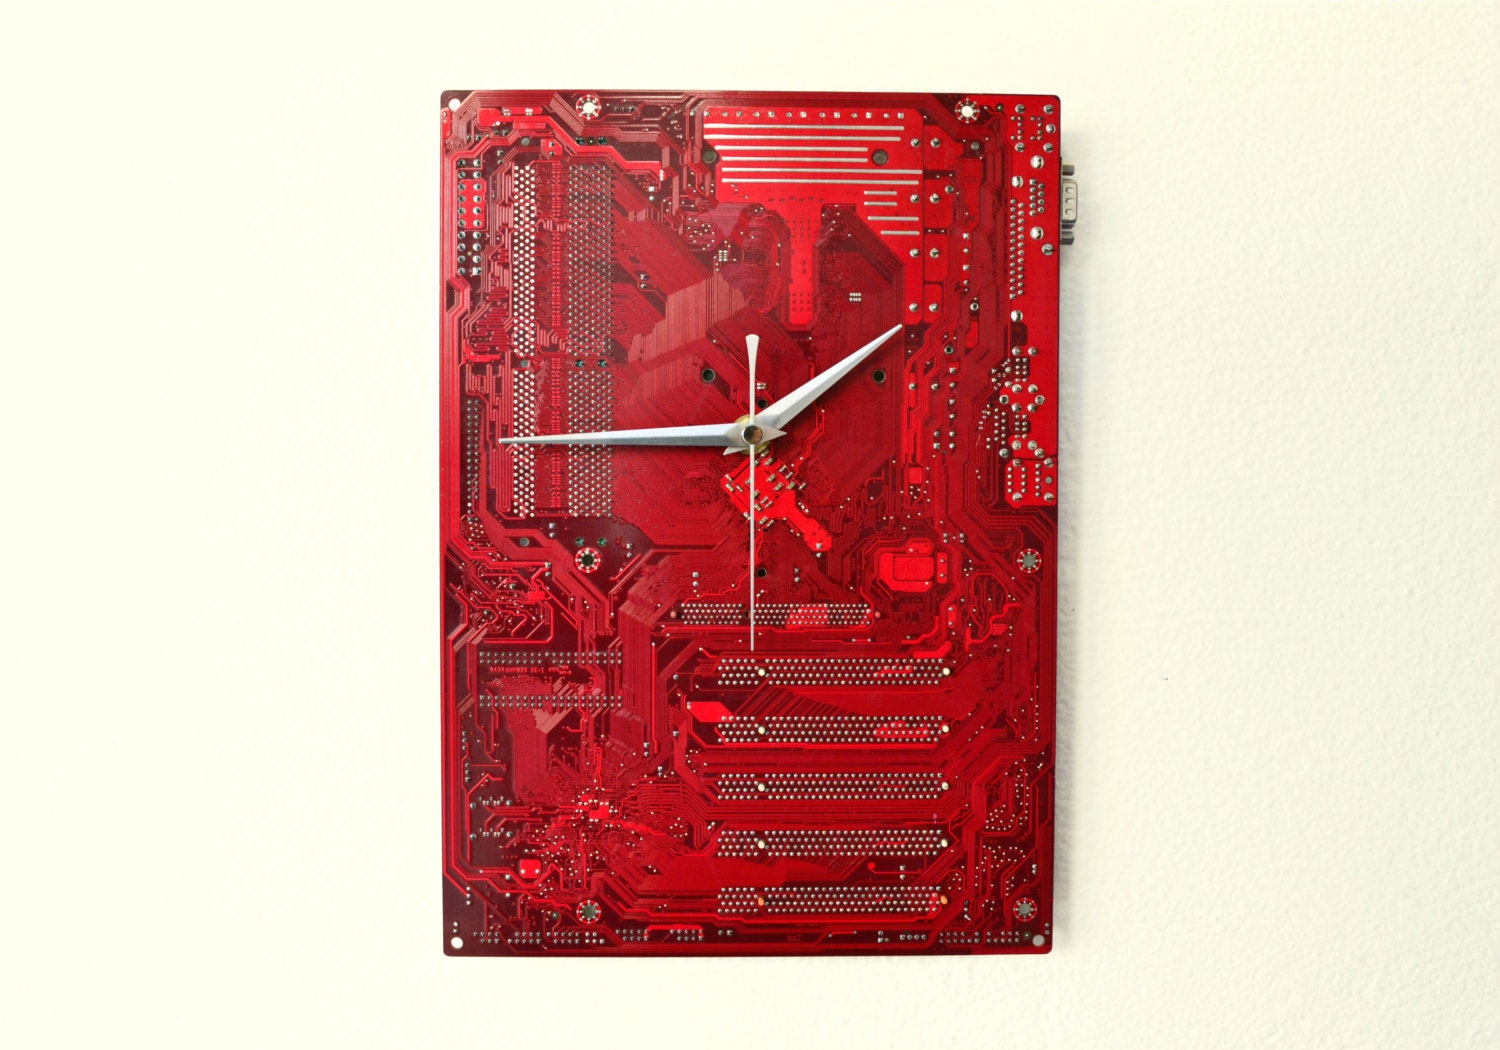 Snap Items Similar To Recycled Circuit Board Clock Not Plain Circuitboardclockjpg Dark Red Modern Wall Industrial Decor And Housewares